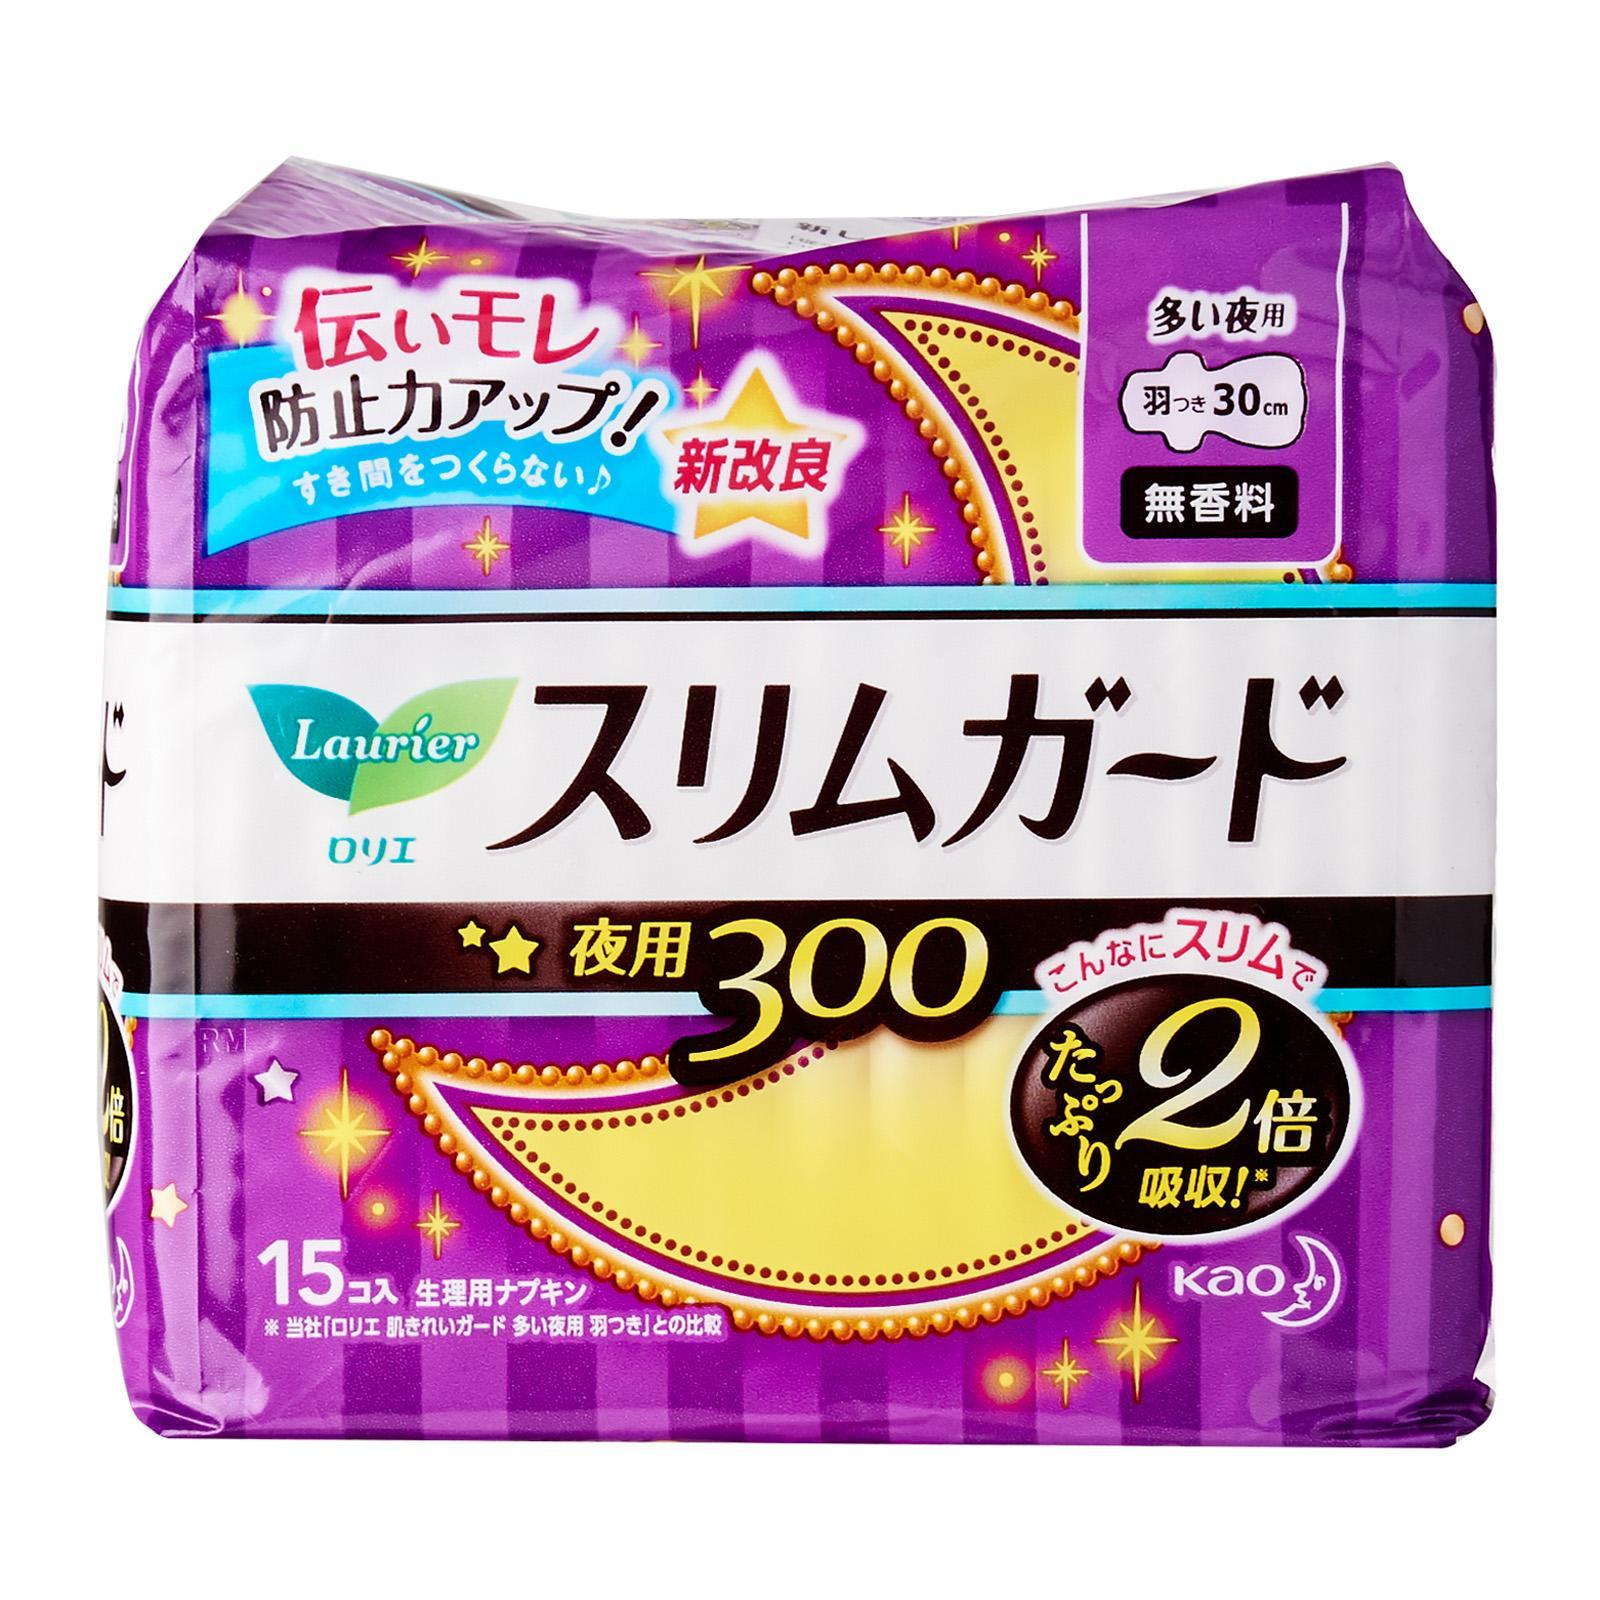 Laurier Slimguard Night Wing Sanitary Pads 30cm - Made in Japan